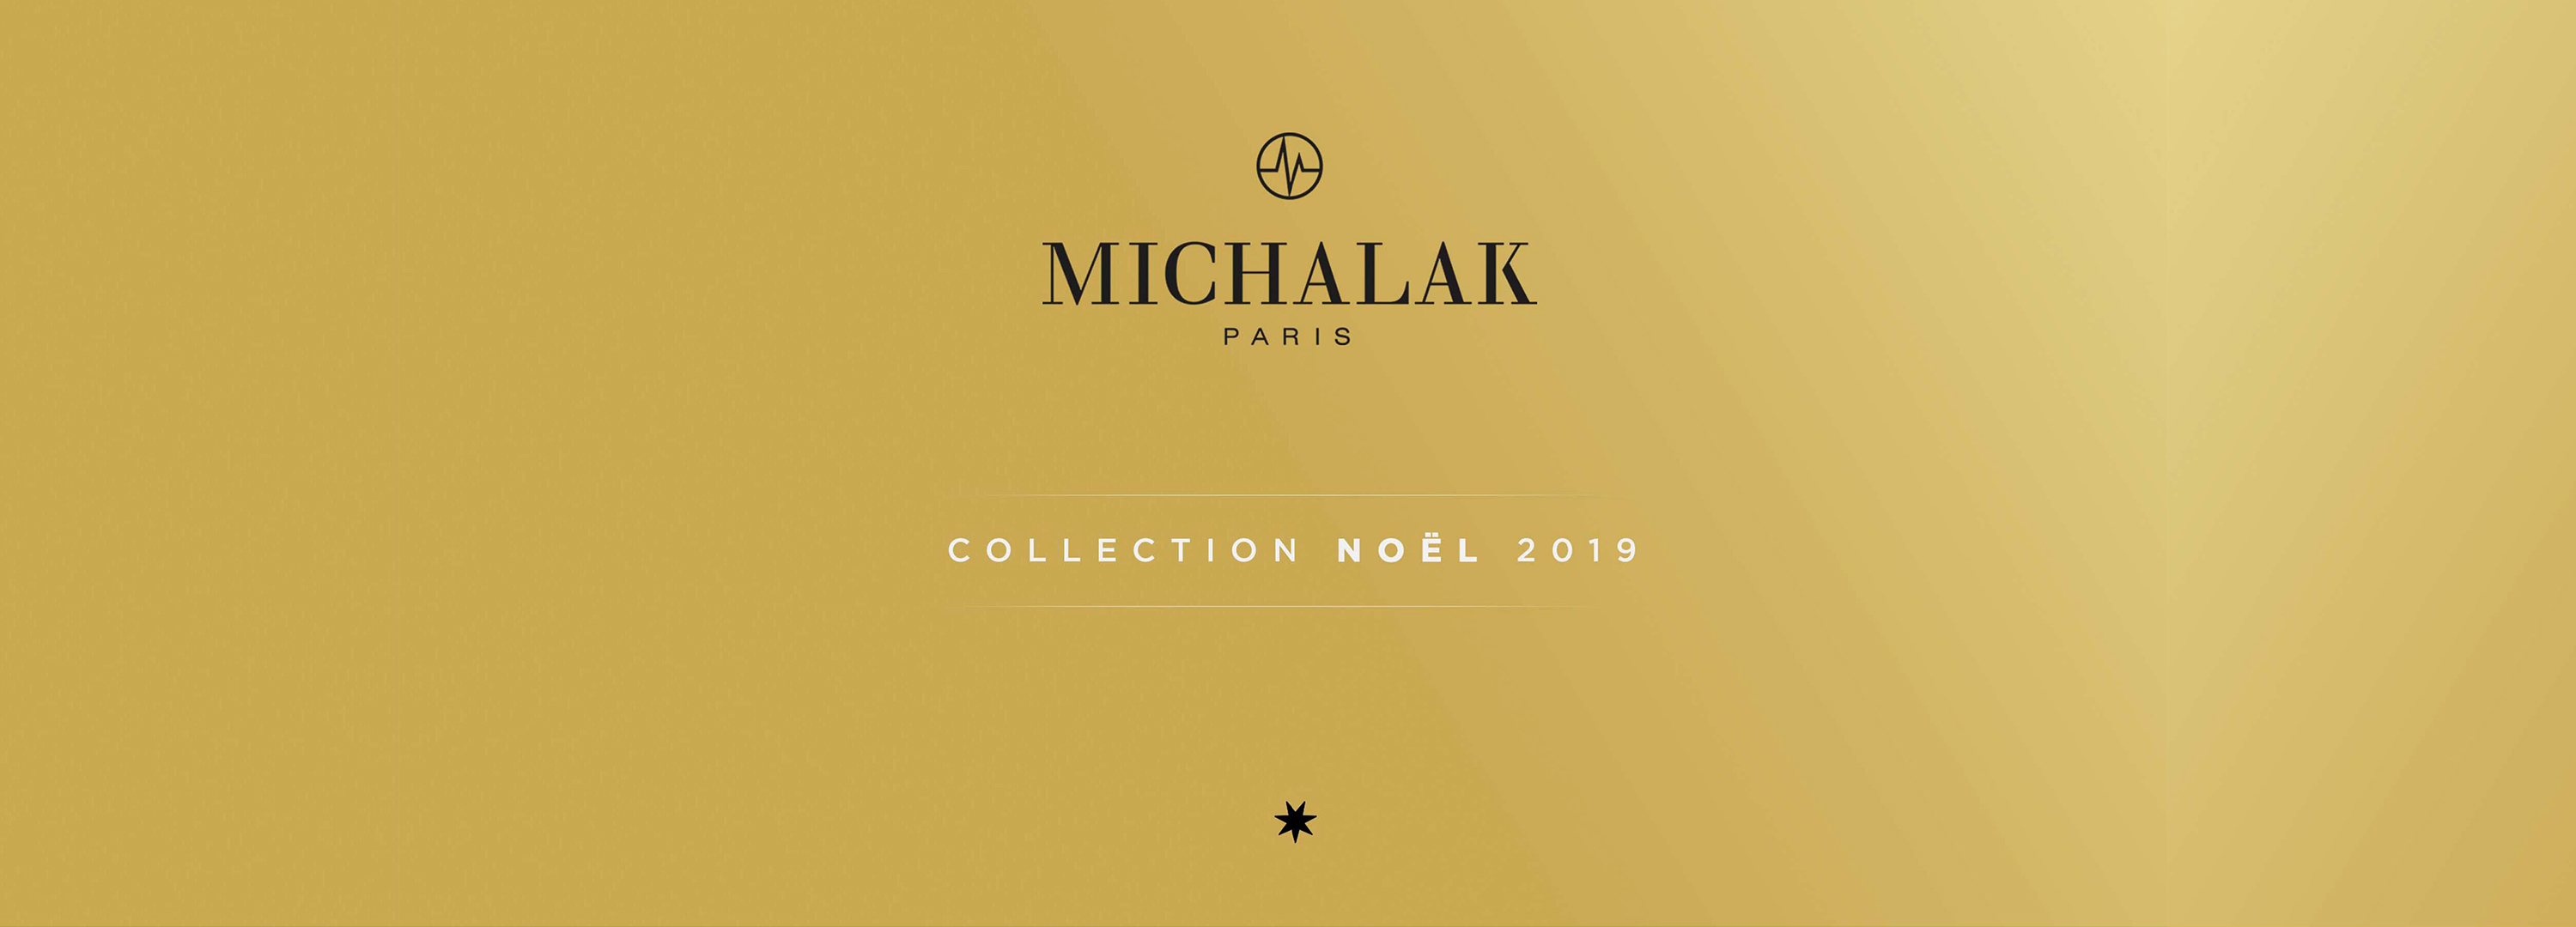 COLLECTION NOEL